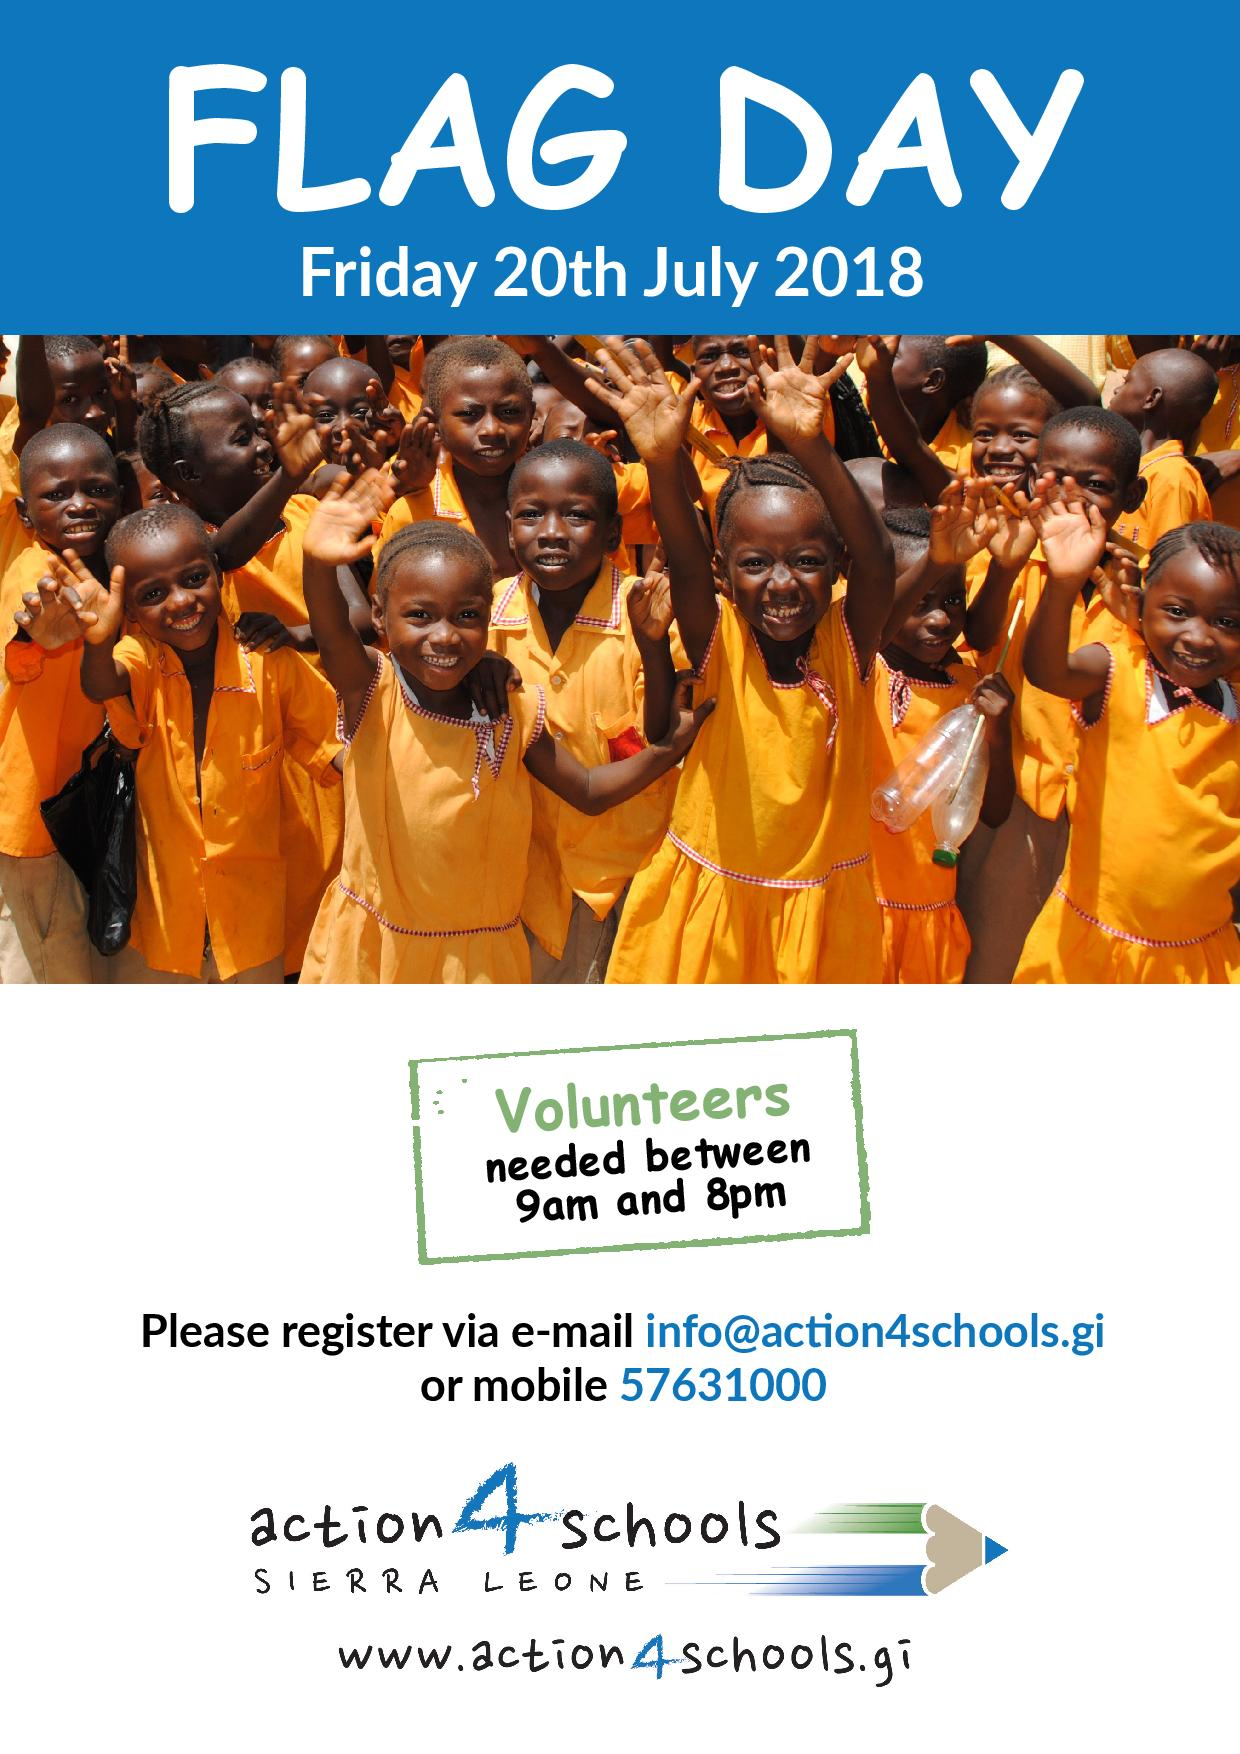 action4schools-flag-day 20th July 2018